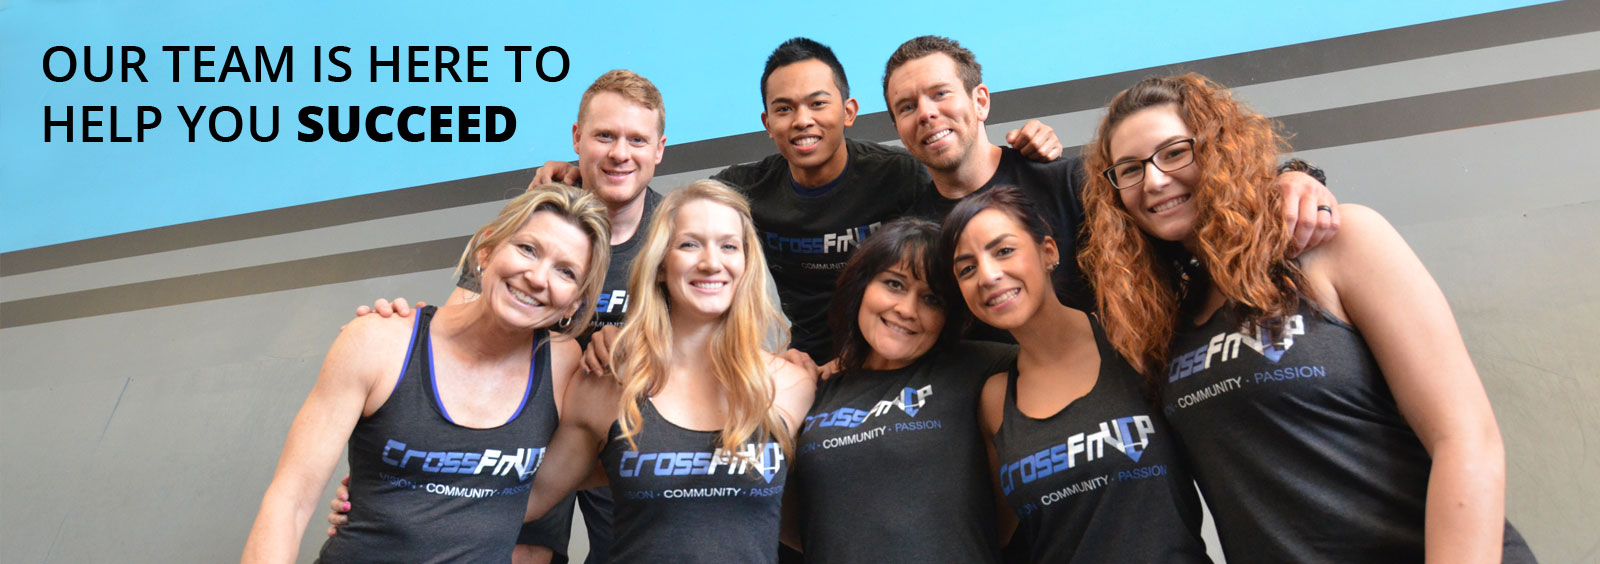 Team photo of coaches at Crossfit VCP in Chico, CA